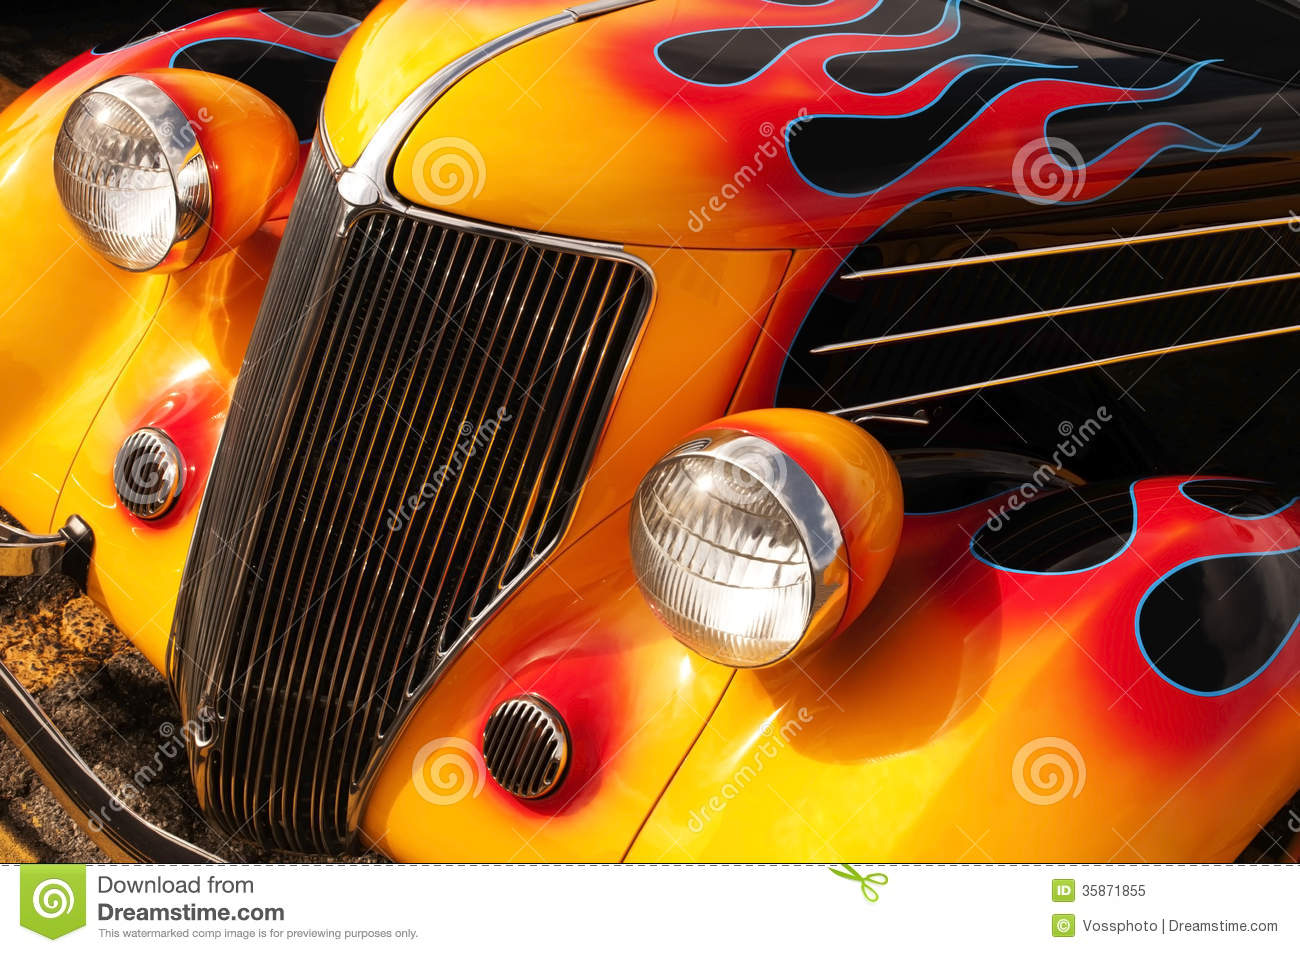 hot-rod-flames-beautifully-done-flame-pa